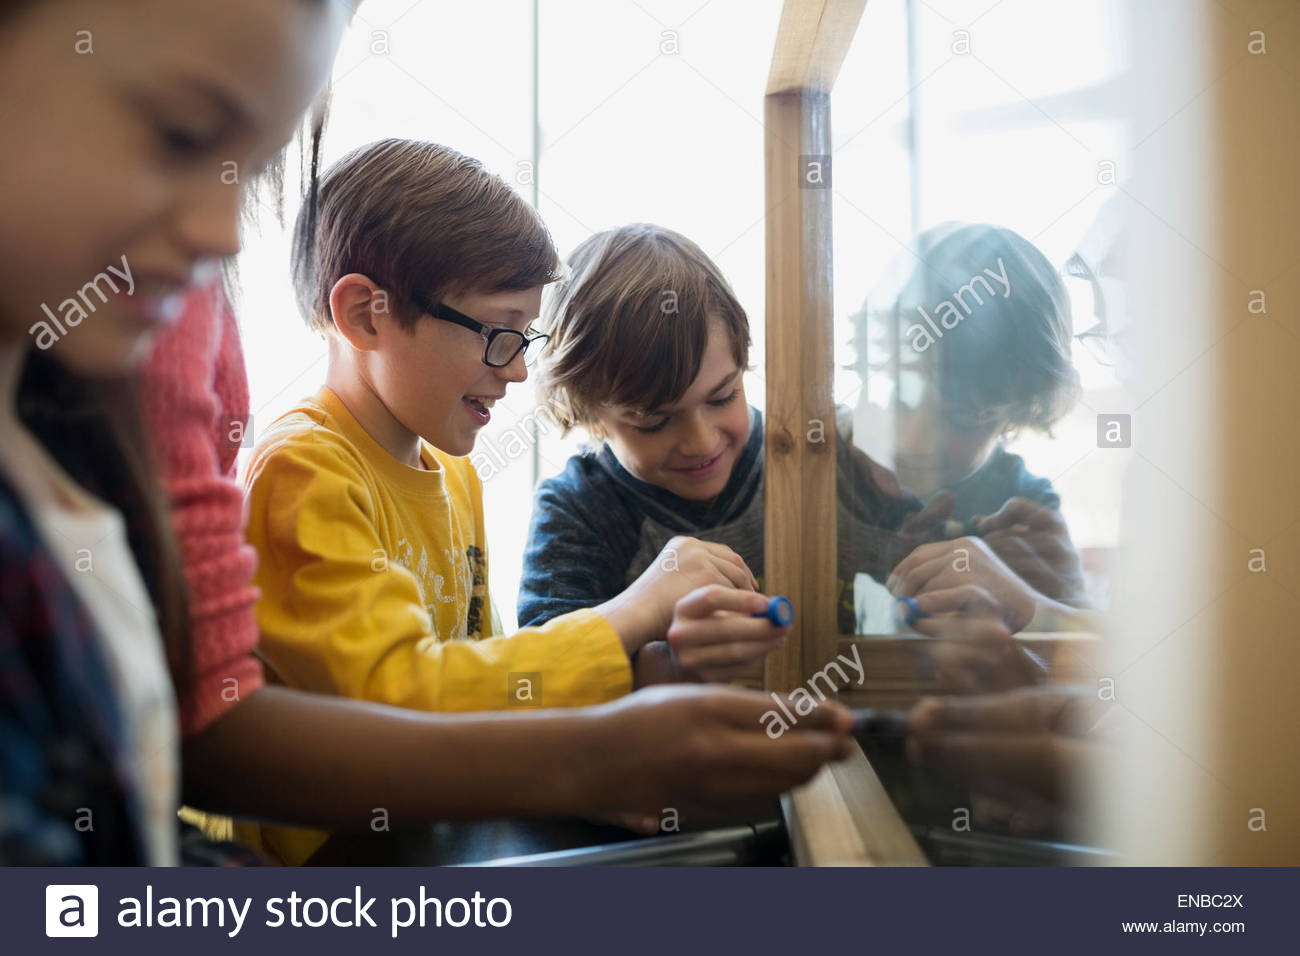 Students at glass board in science center - Stock Image